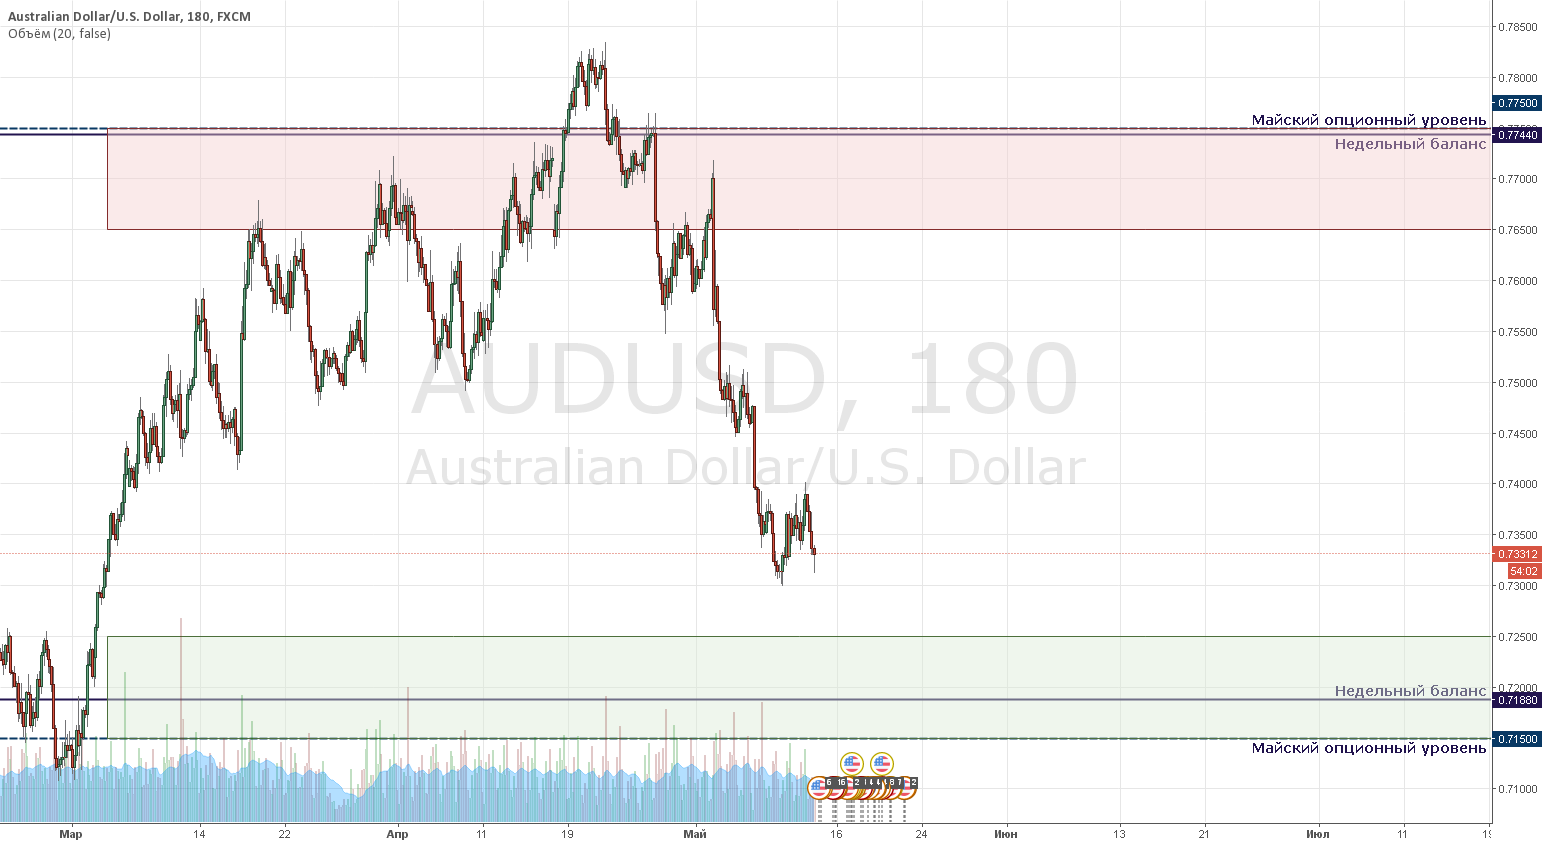 AUDUSD Market Review 05/16